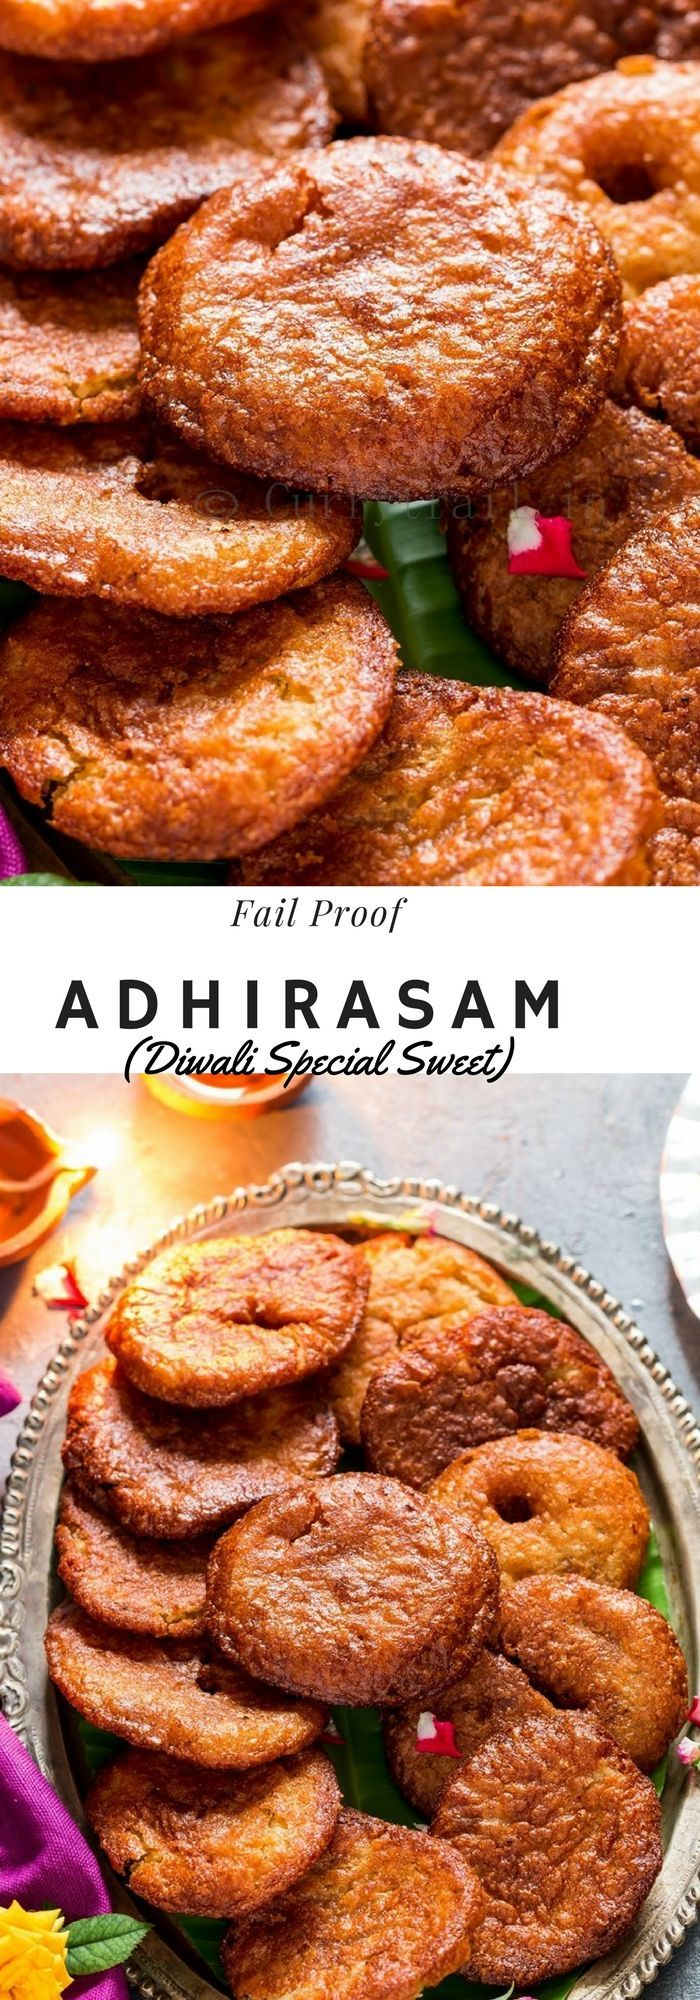 Adhirasam Recipe | Diwali Special Sweet Adhirasam is a old traditional South Indian special sweet dish. This recipe has been passed down for generations. A rich sweet that is made of freshly ground rice flour and jaggery, it's very addictive and very delicious. http://currytrail.in